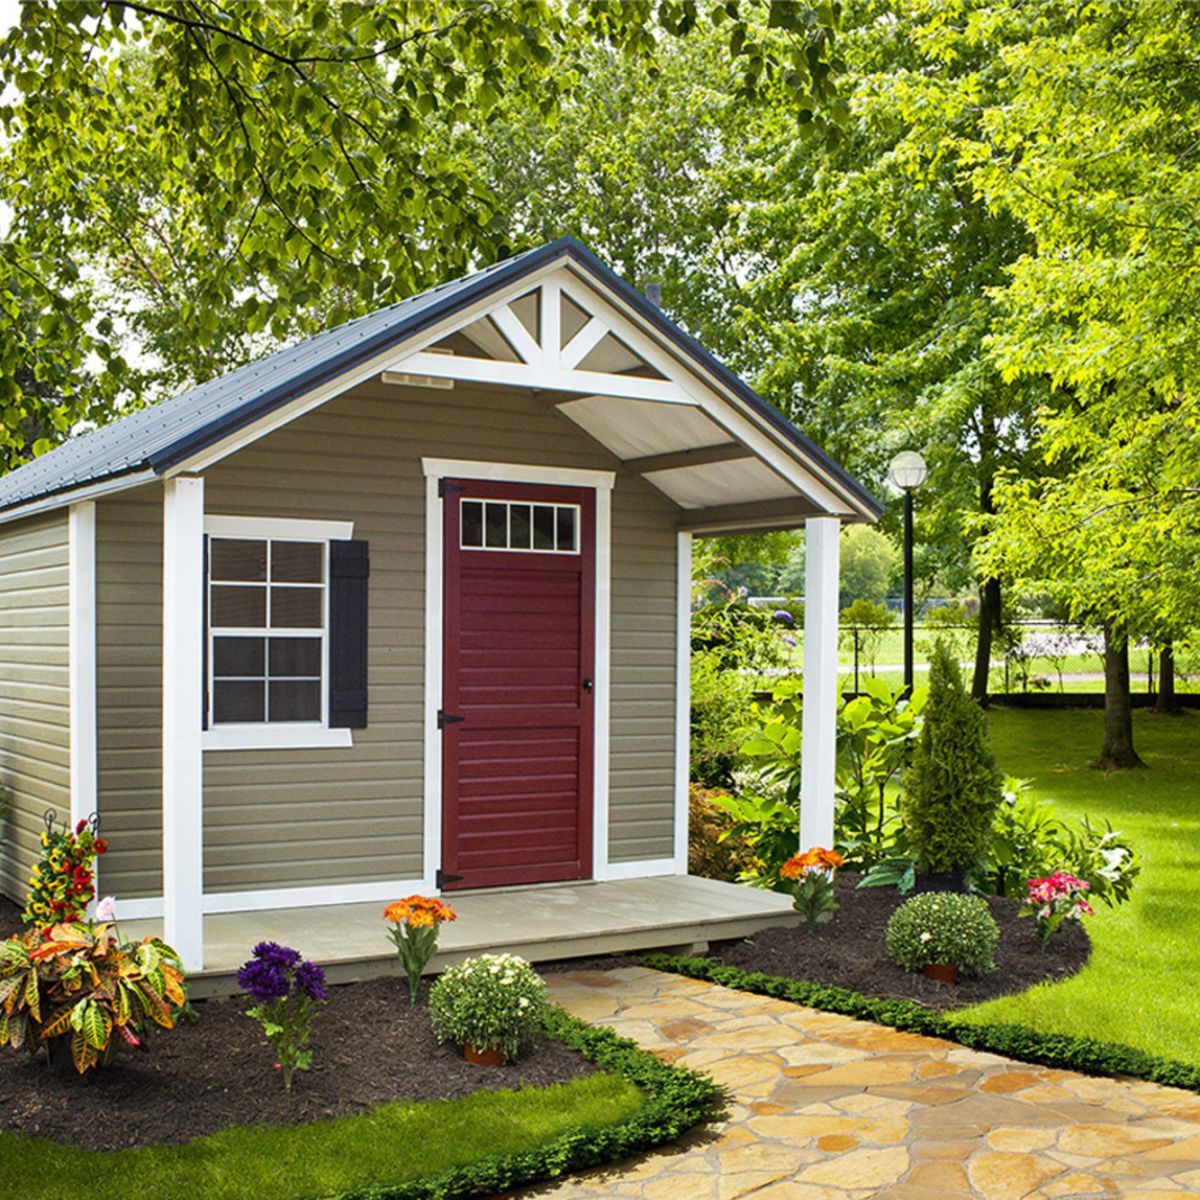 Shed Squad Tiny House Shell For Sale In Mount Vernon